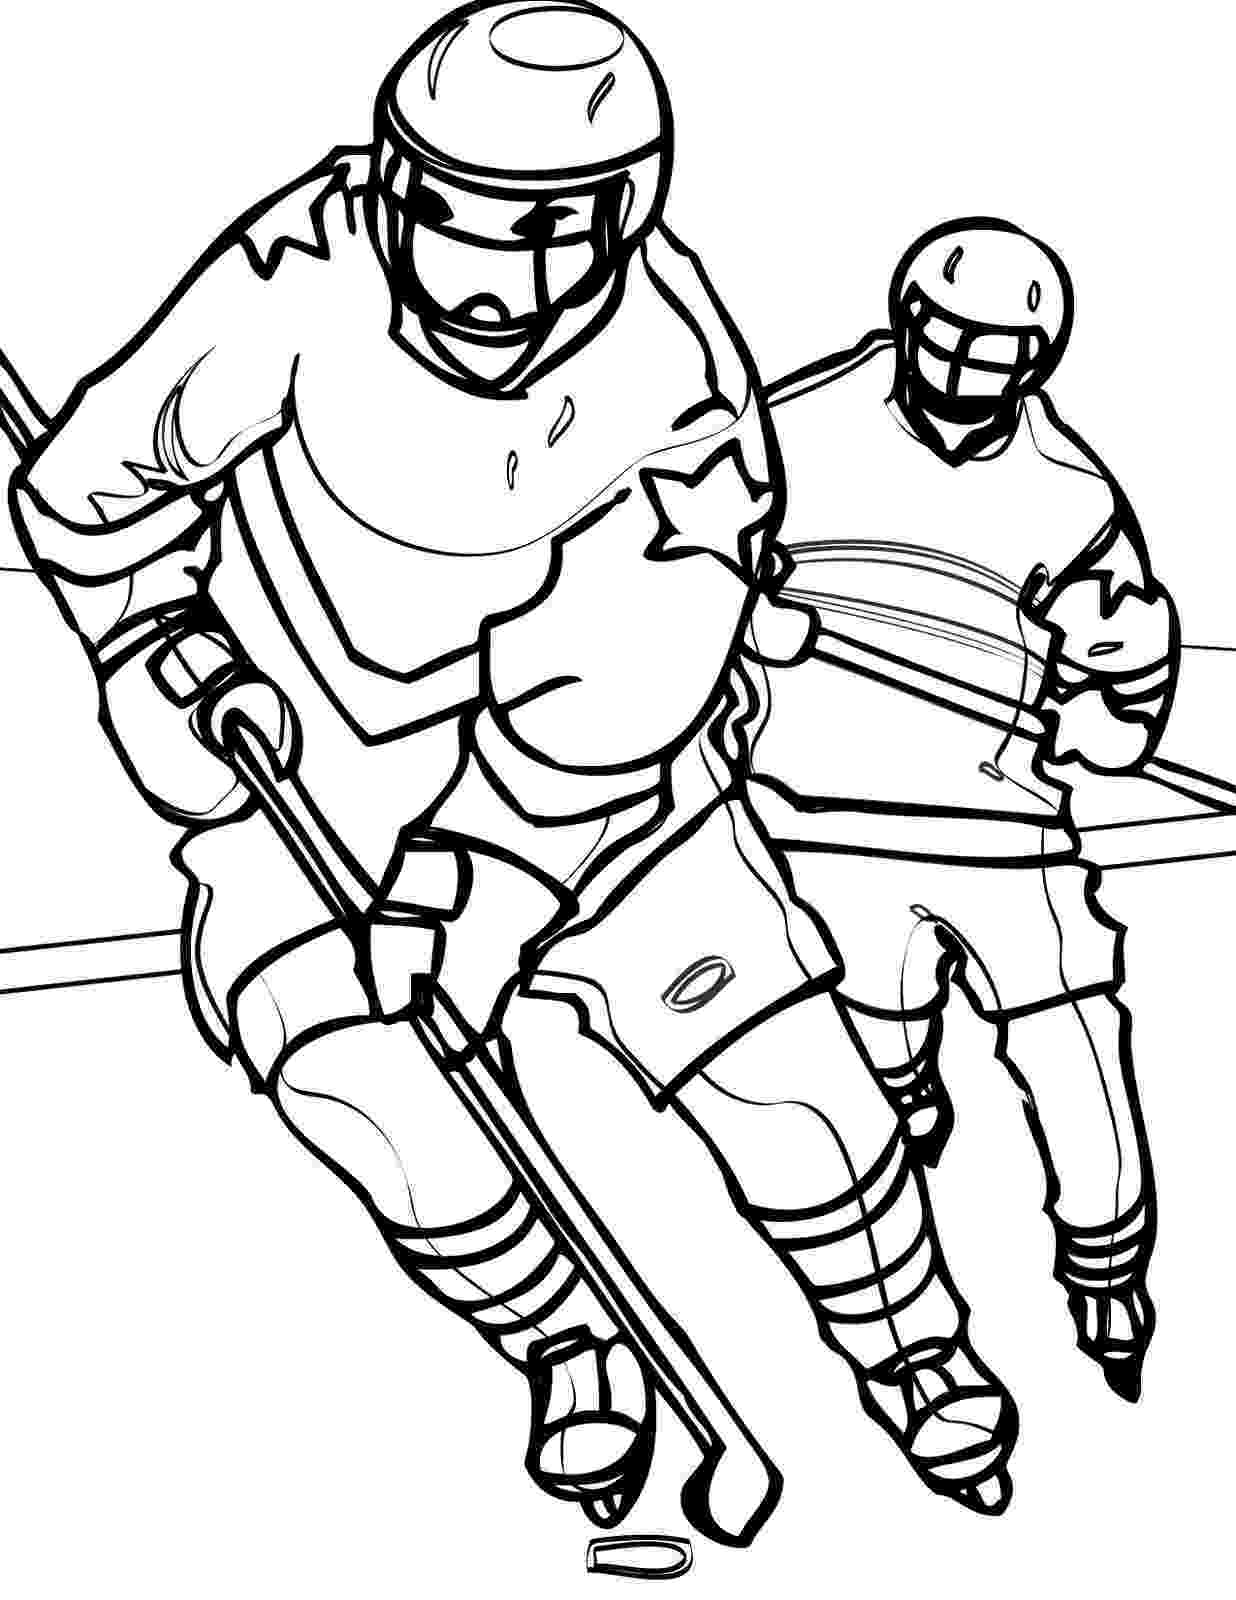 printable hockey pictures nashville predators logo coloring page get coloring pages hockey printable pictures